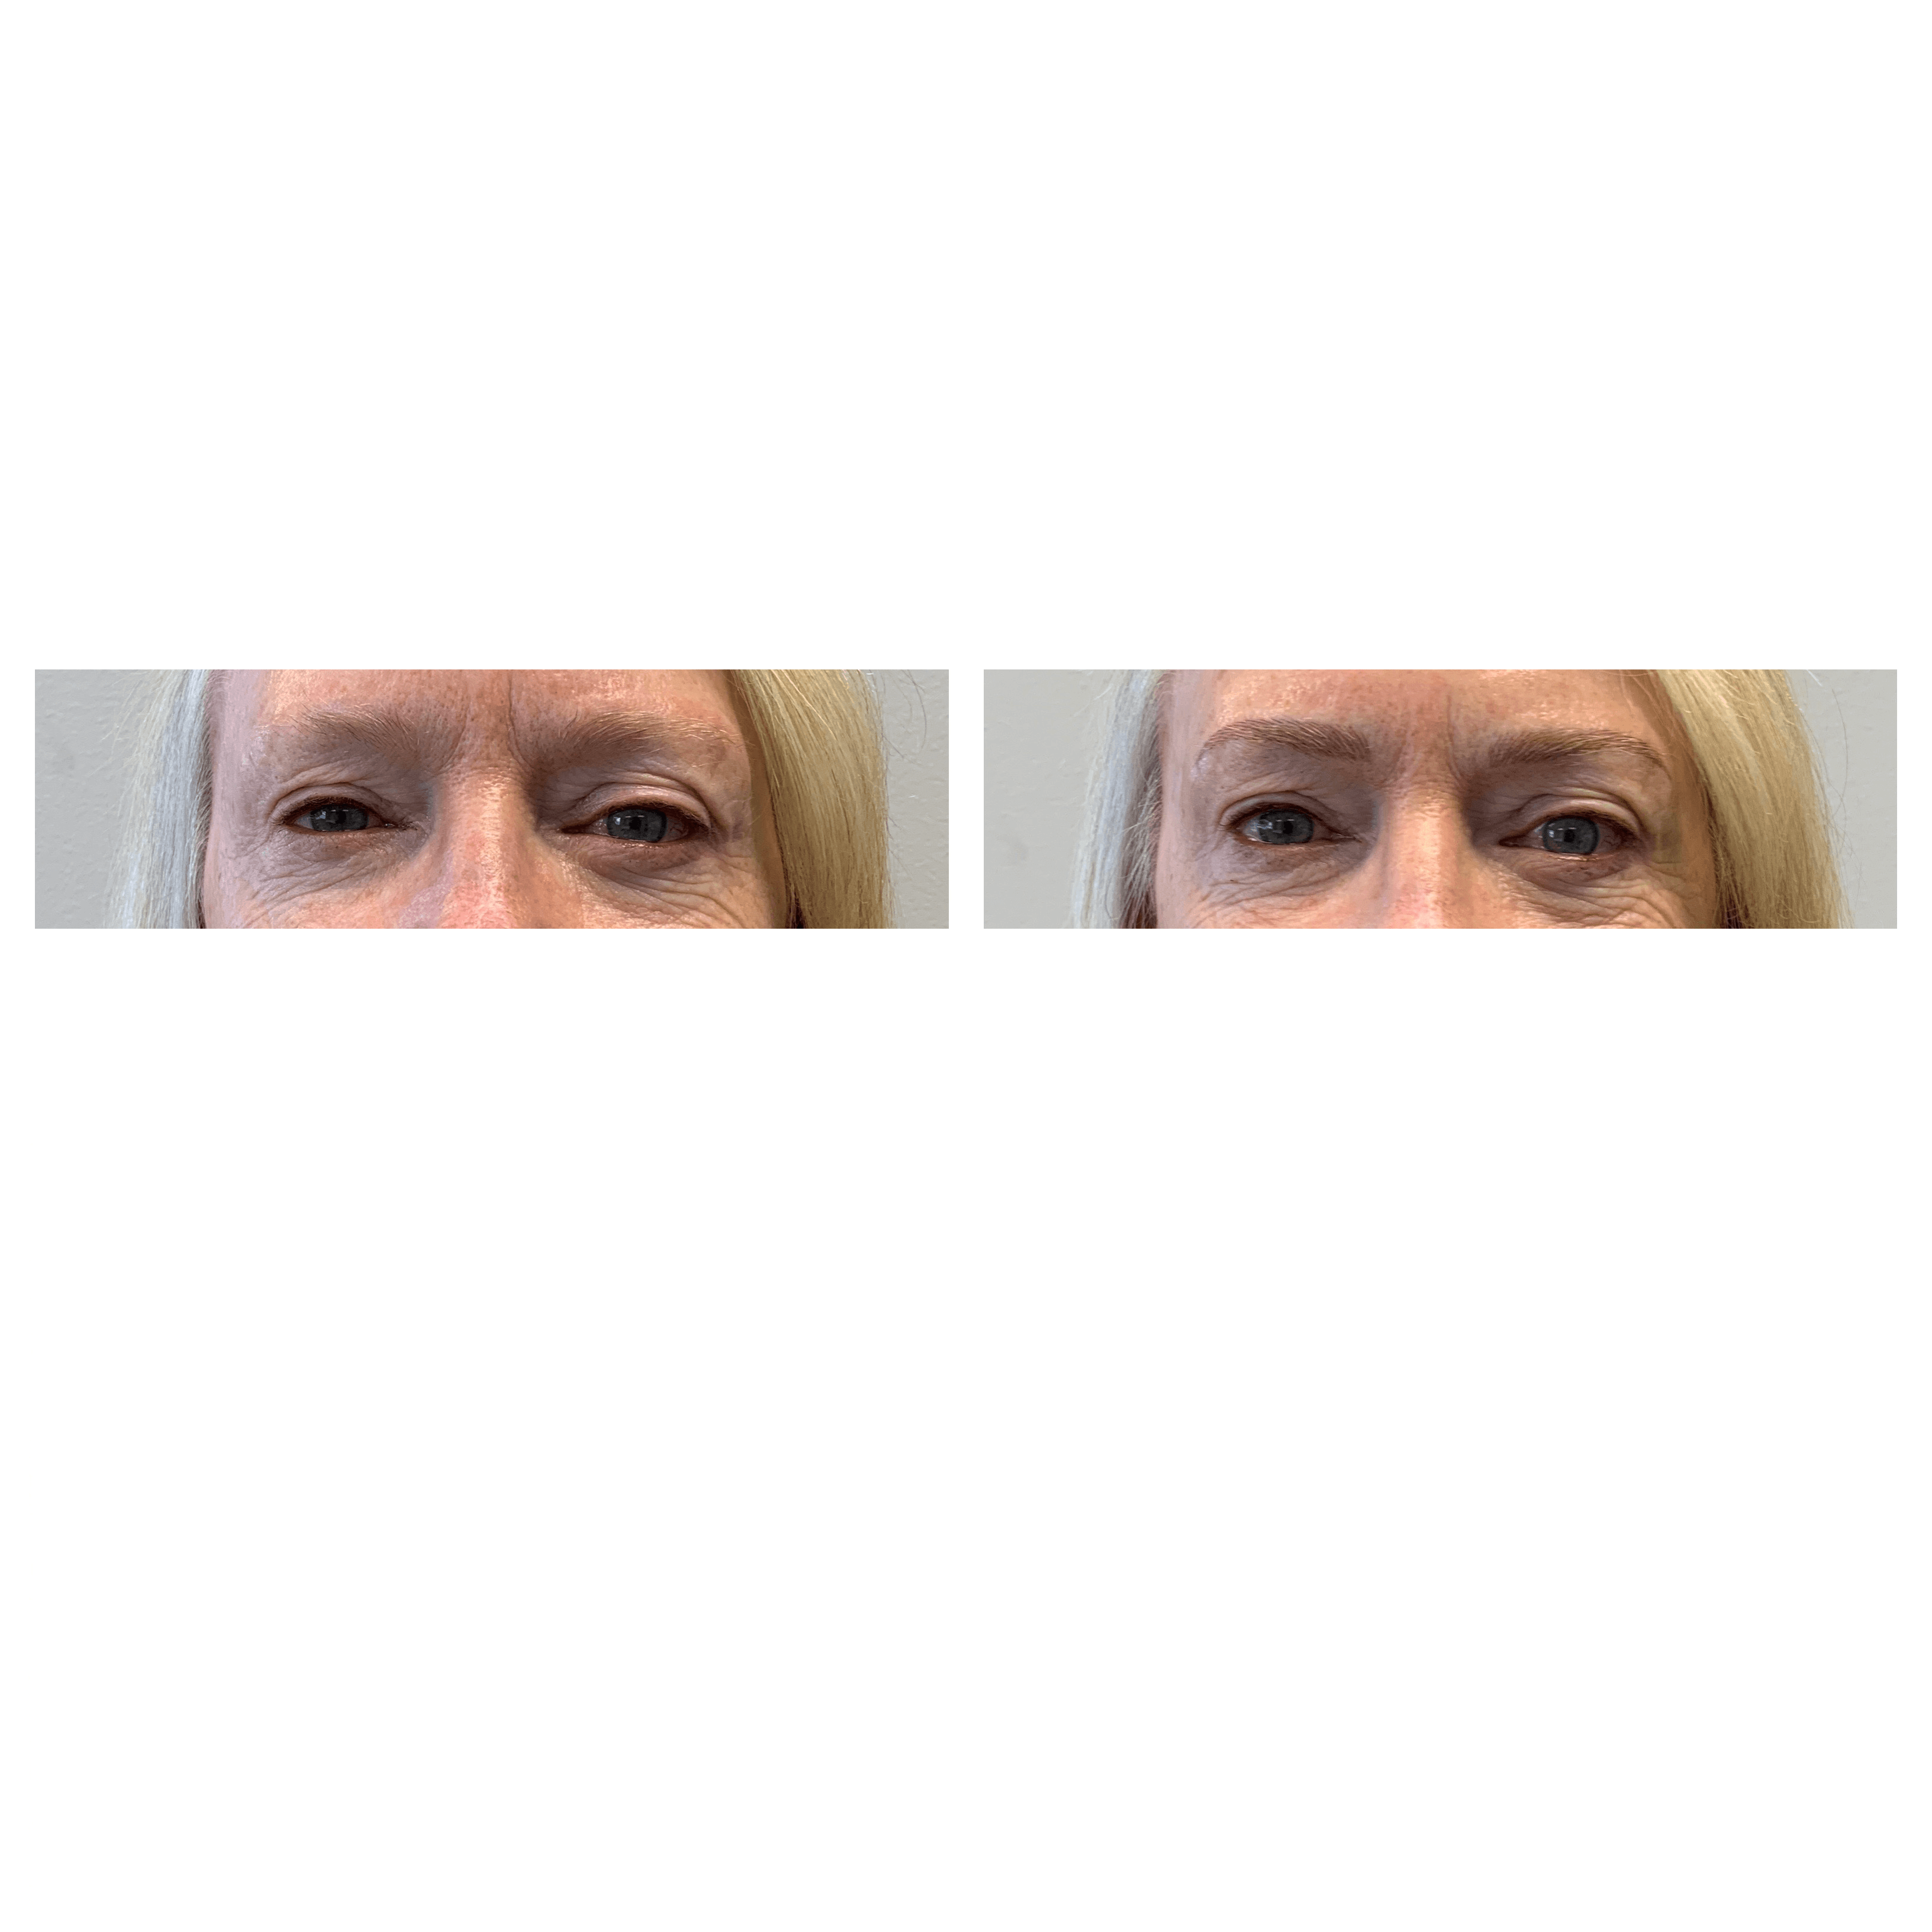 microblading before & after photo, Utah microblading service